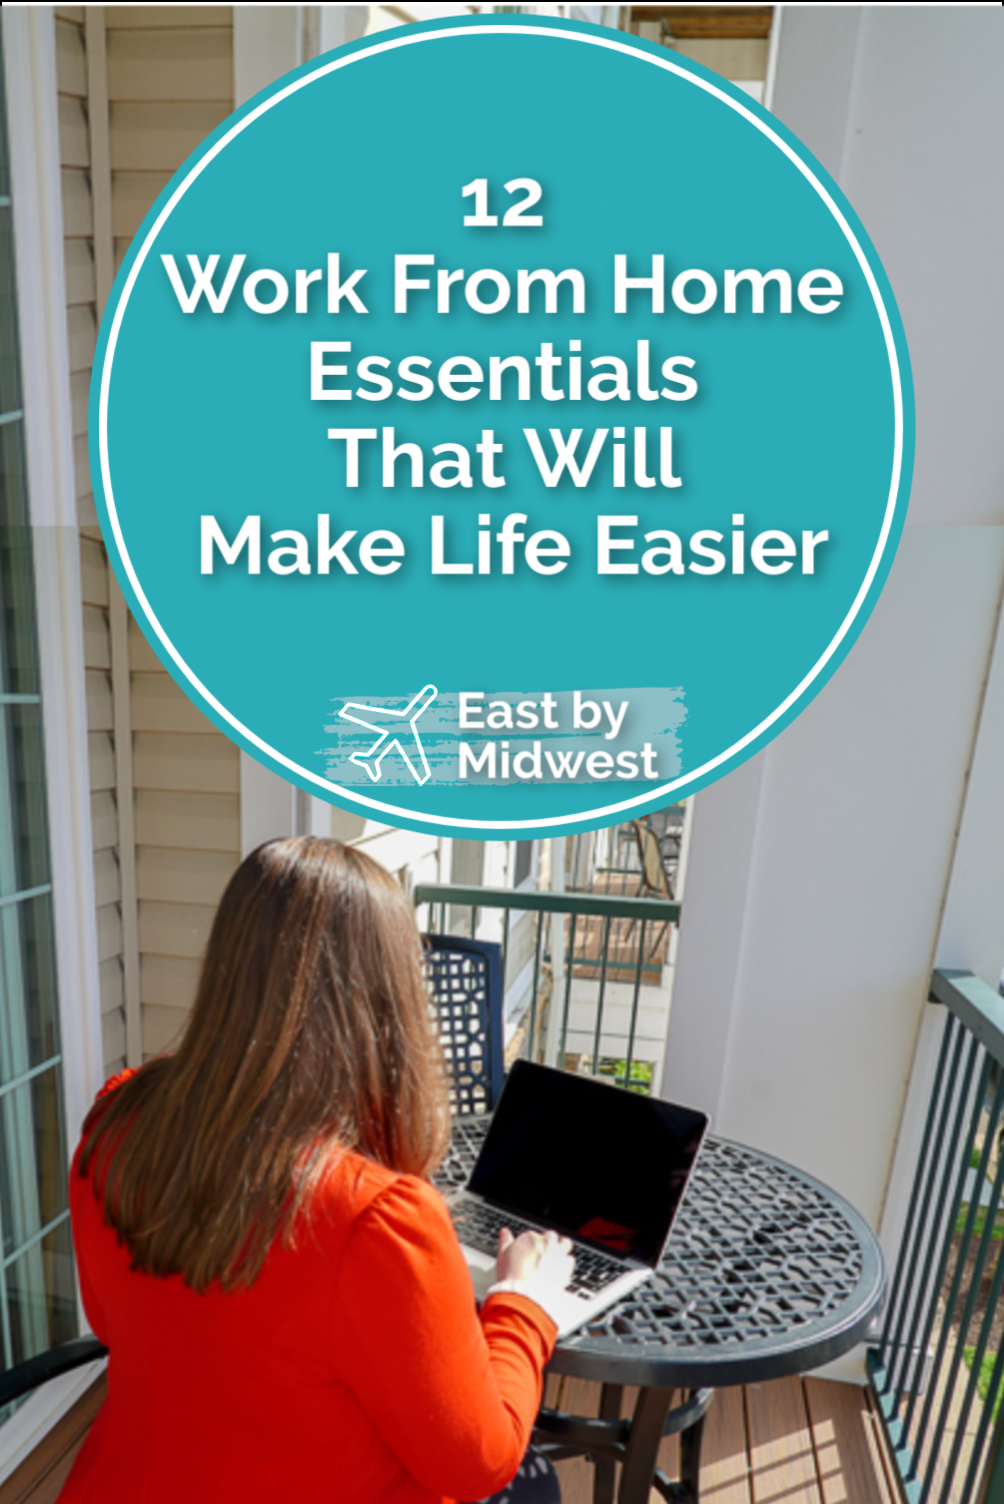 12 Work From Home Essentials That Will Make Life Easier